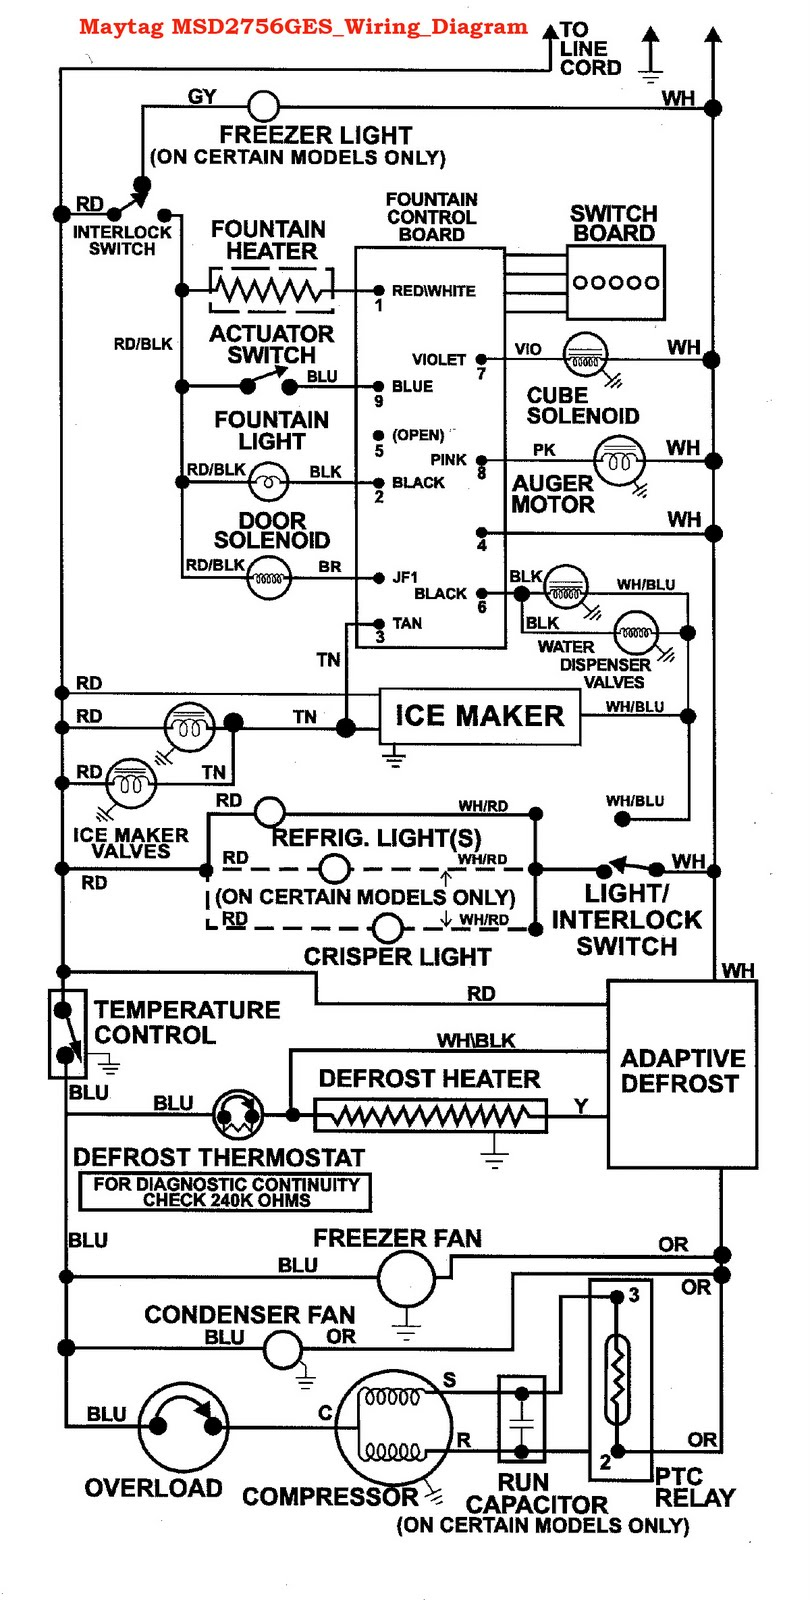 refrigerator compressor wiring diagram wirdig whirlpool refrigerator compressor wiring diagram pdf photo album